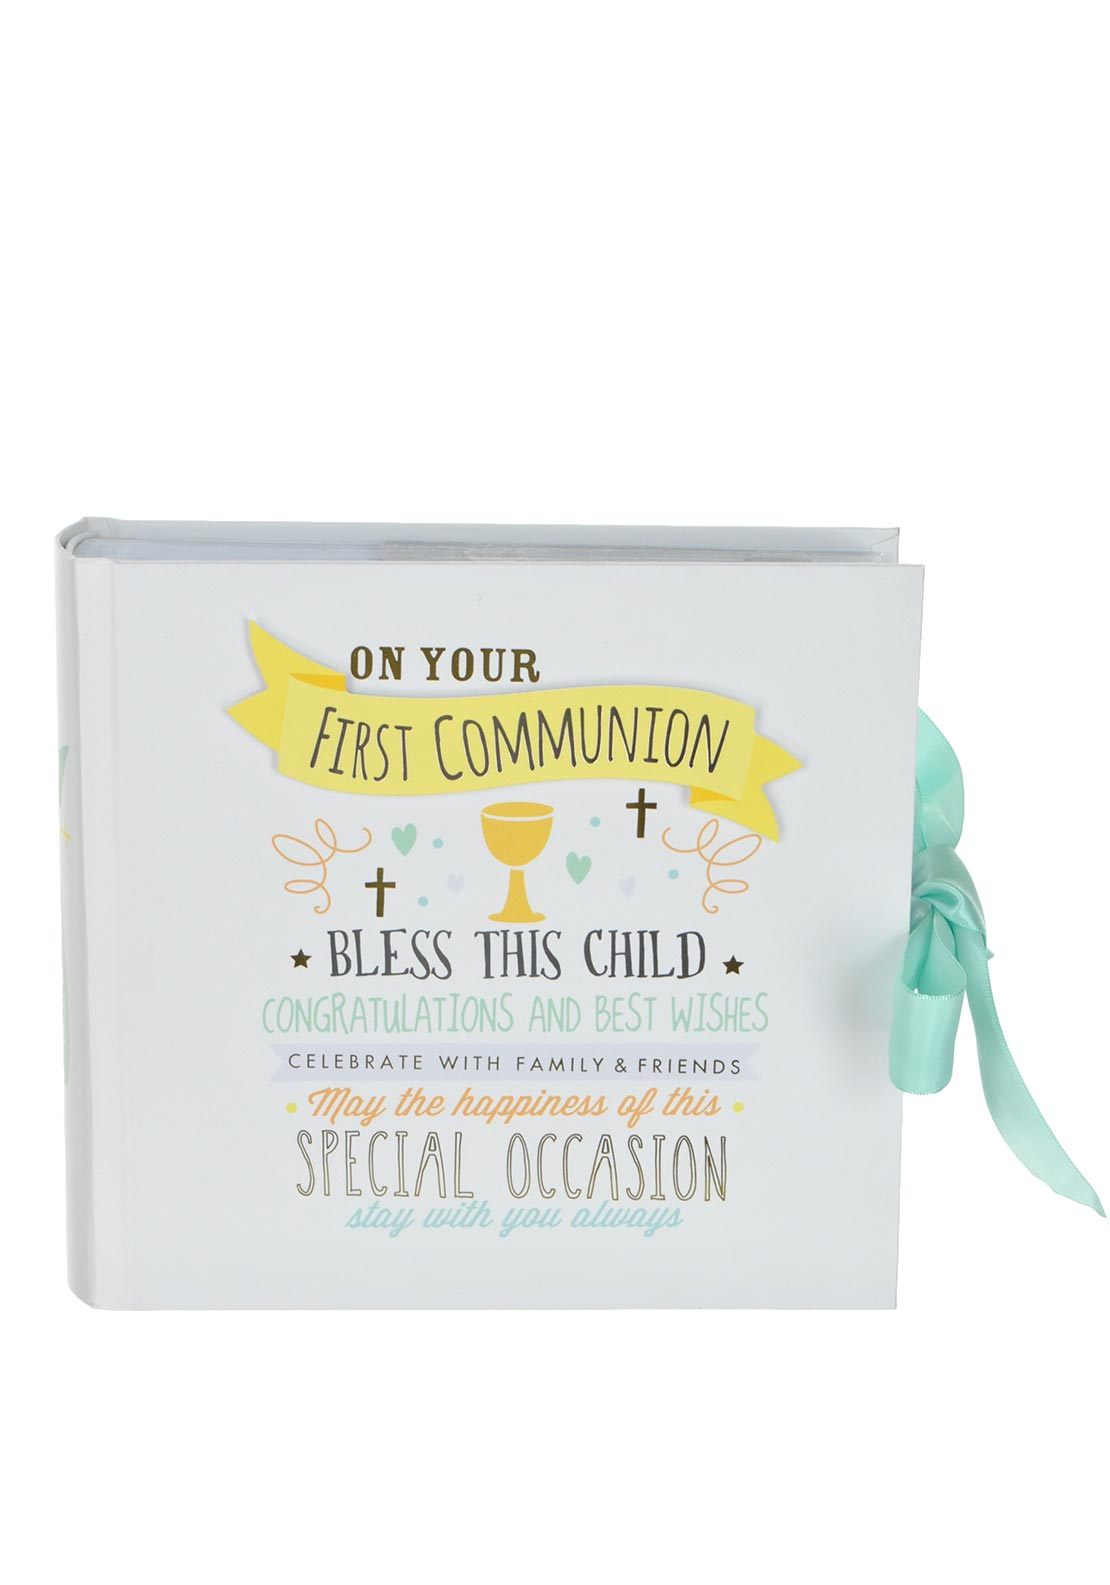 Widdop & Bingham On Your First Communion Photo Album, 6 x 4 inch